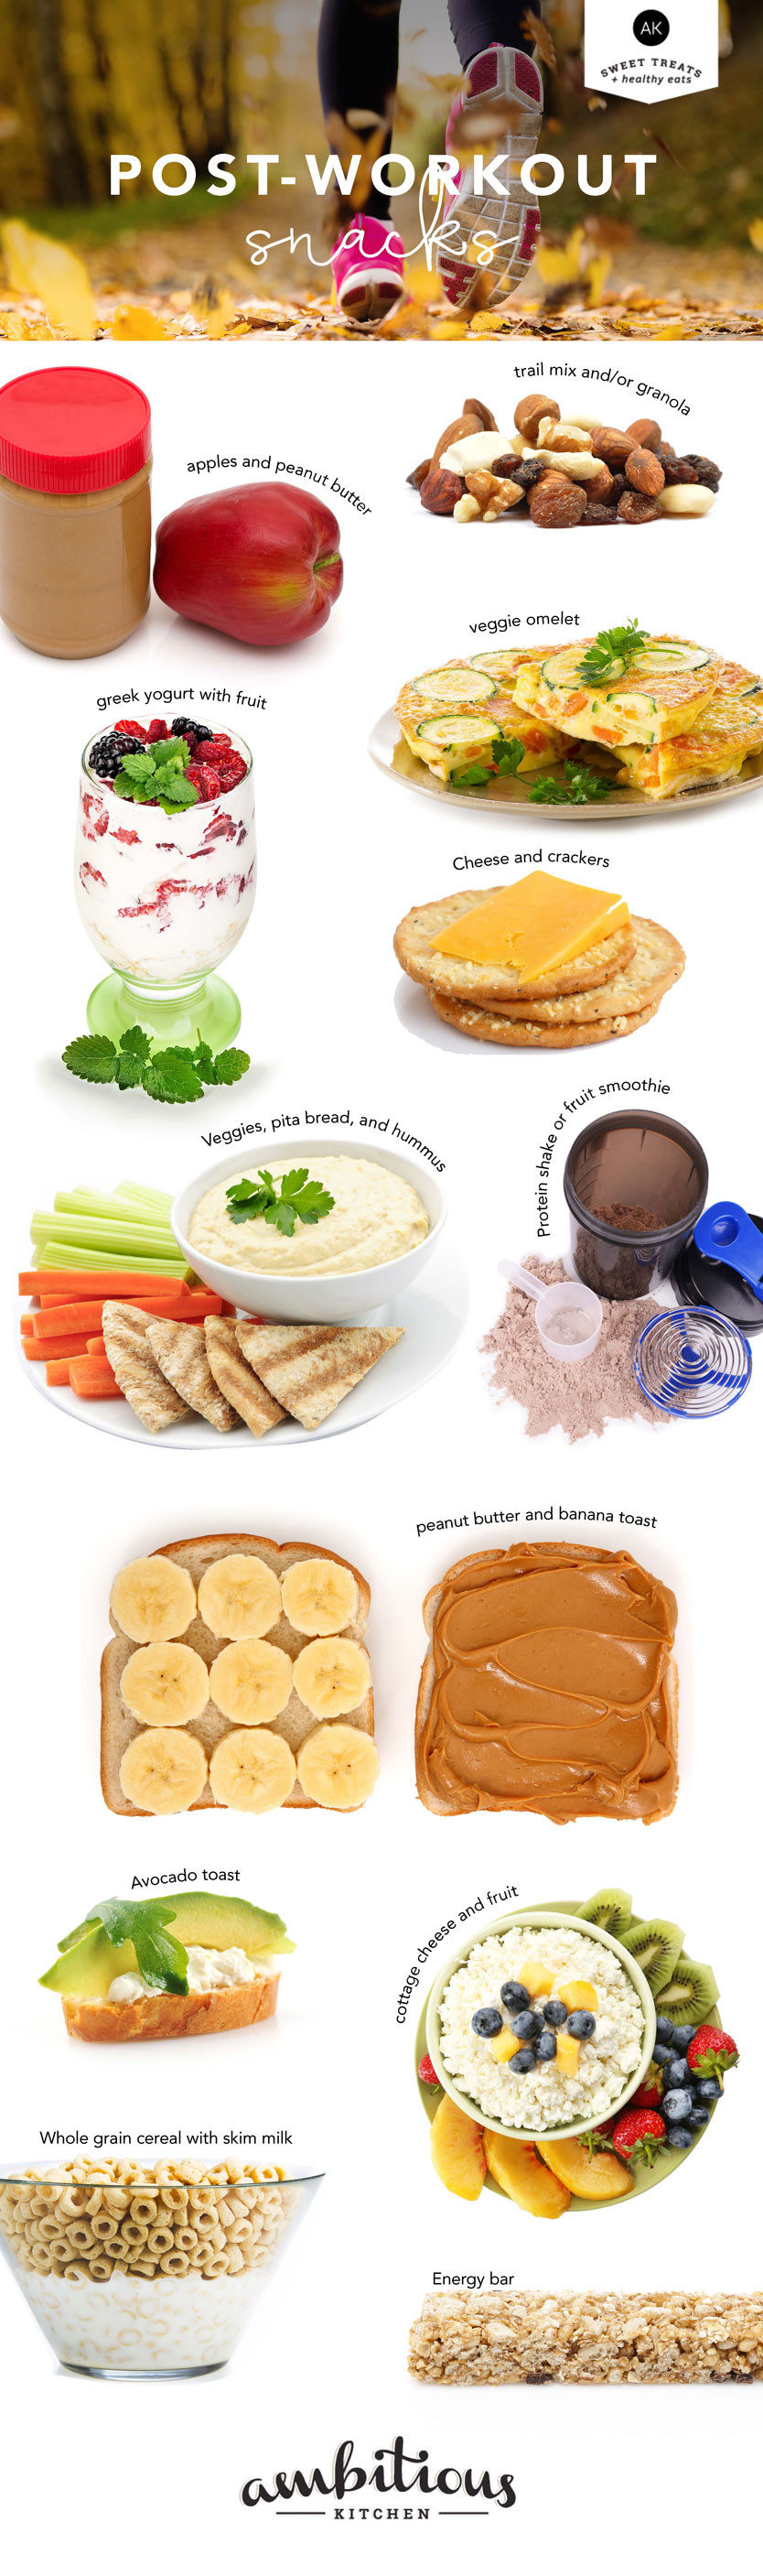 Healthy Snacks For Working Out  Wellness Wednesday 12 Healthy Post Workout Snacks When